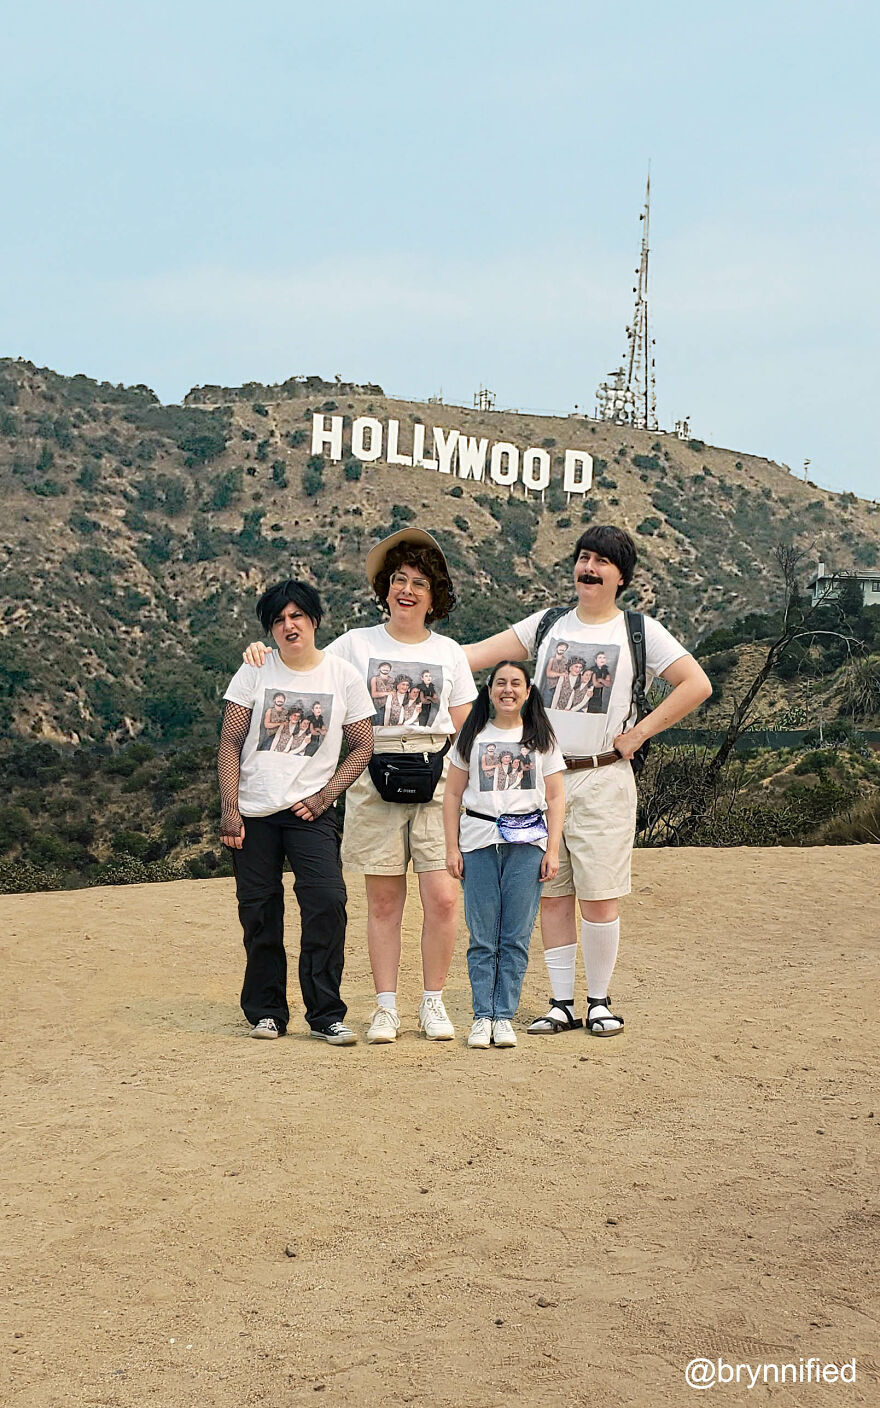 Hollywood Sign—Los Angeles, CA